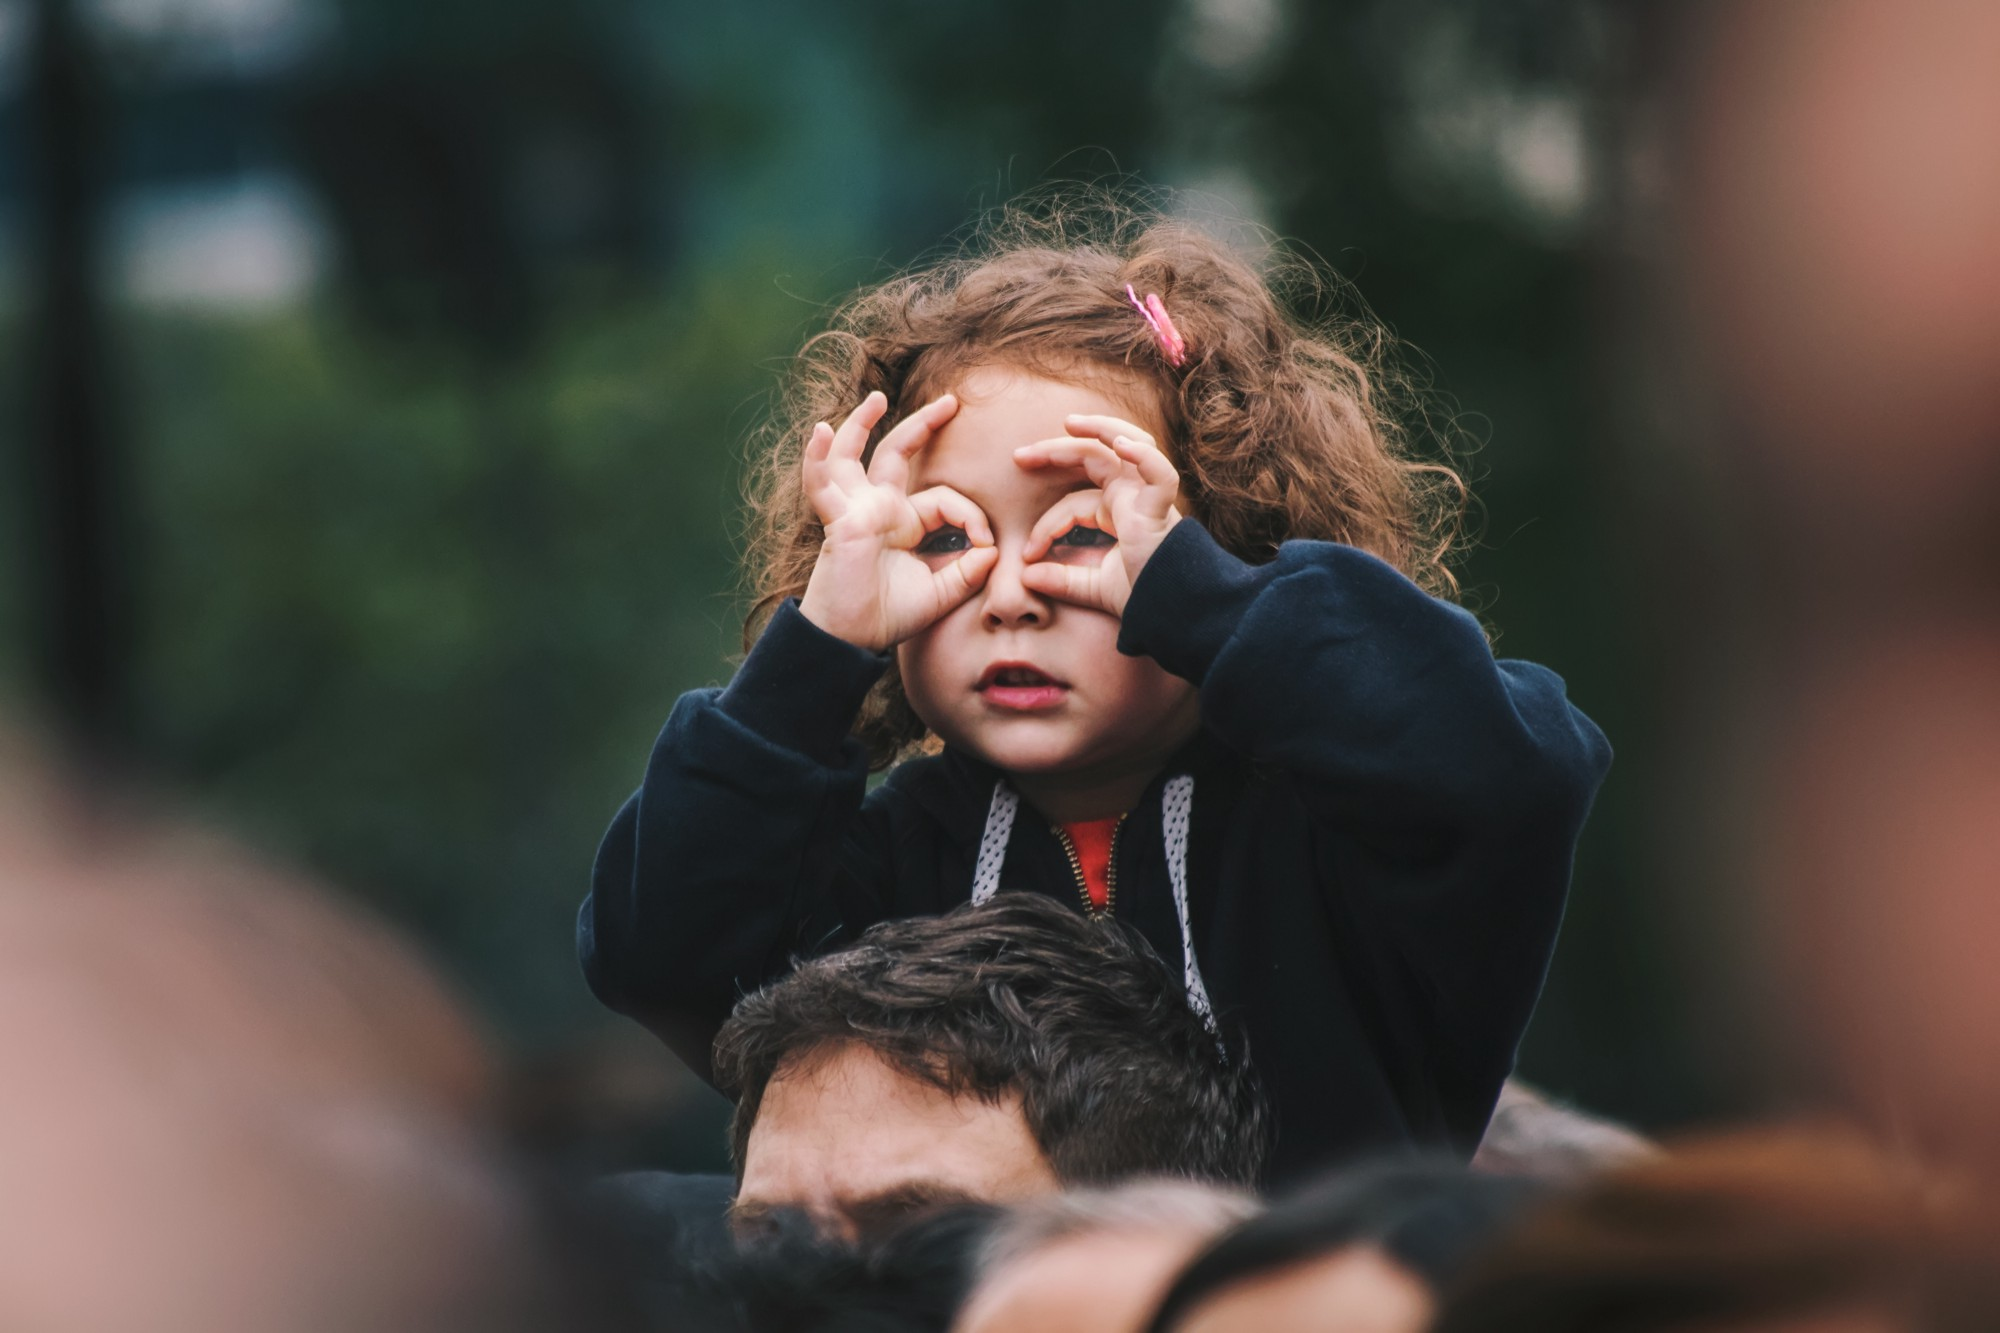 How to see God in the everyday. We find what we are looking for.